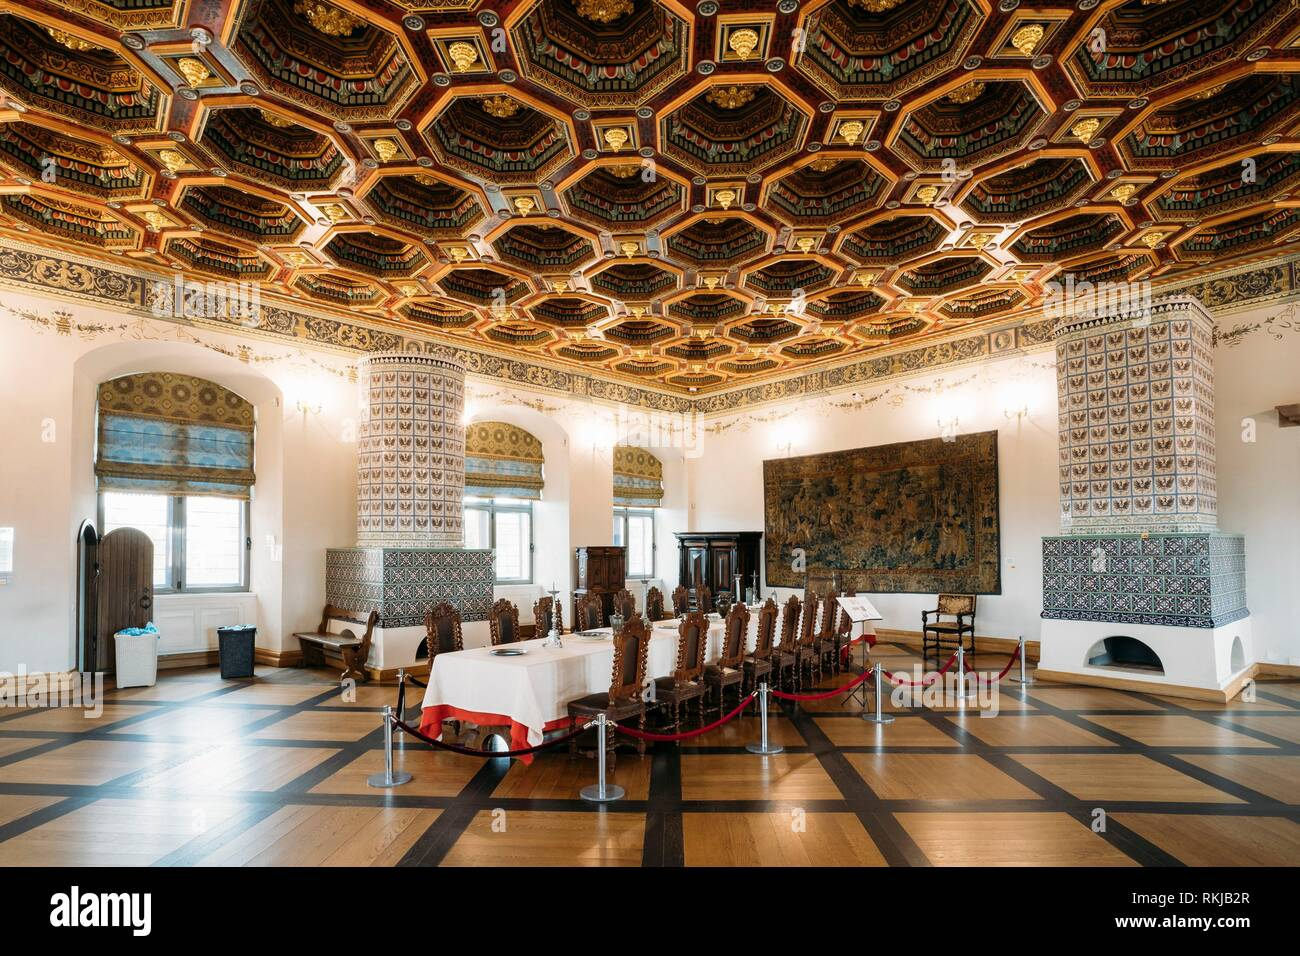 Mir, Belarus - September 1, 2016: Exposition The Dining Room Izba In Castle Complex Museum. Famous Landmark, Architectural Ensemble Of Feudalism, - Stock Image